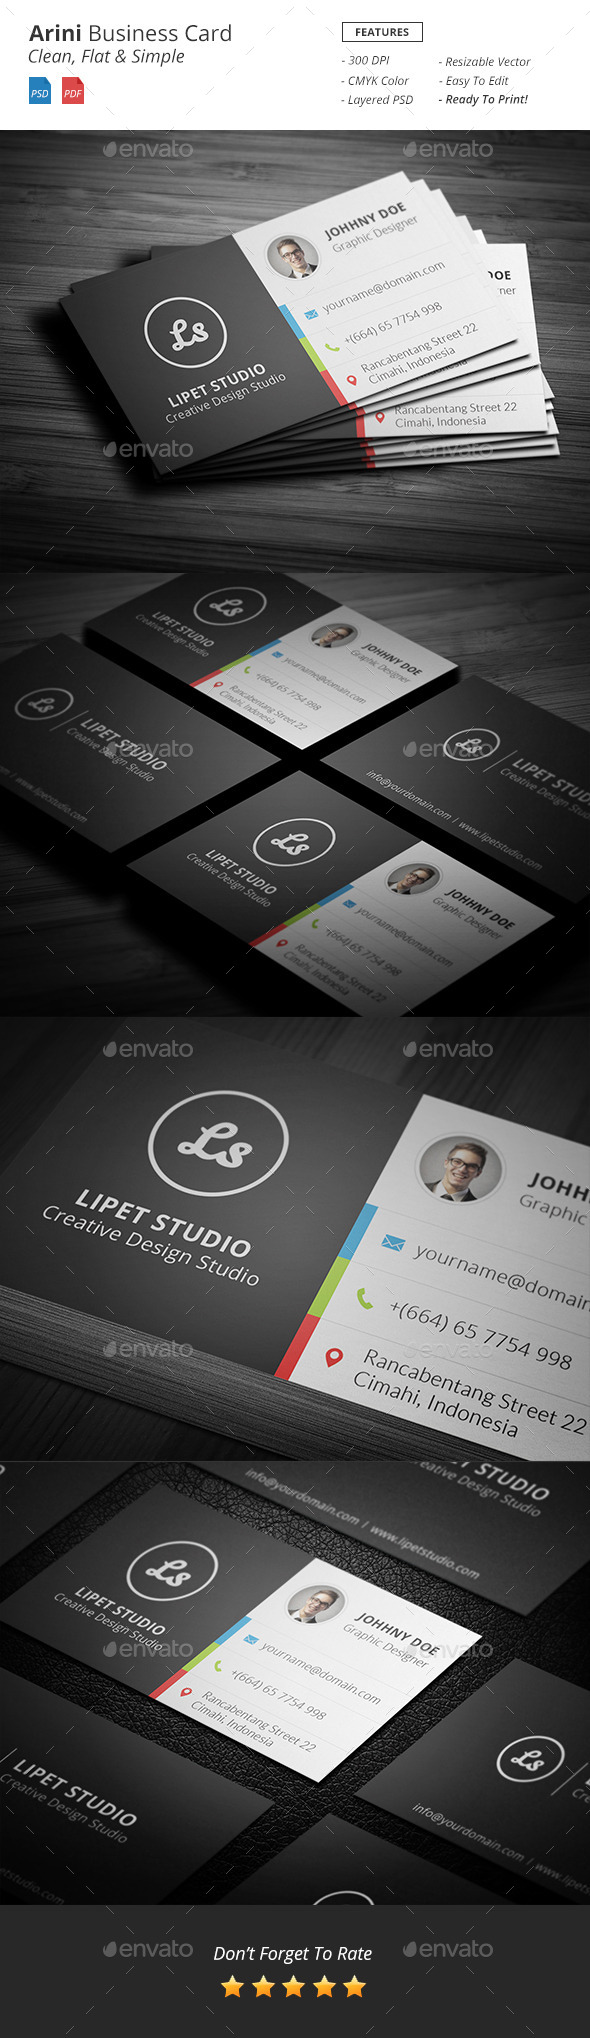 GraphicRiver Arini Clean Business Card Template 9449528